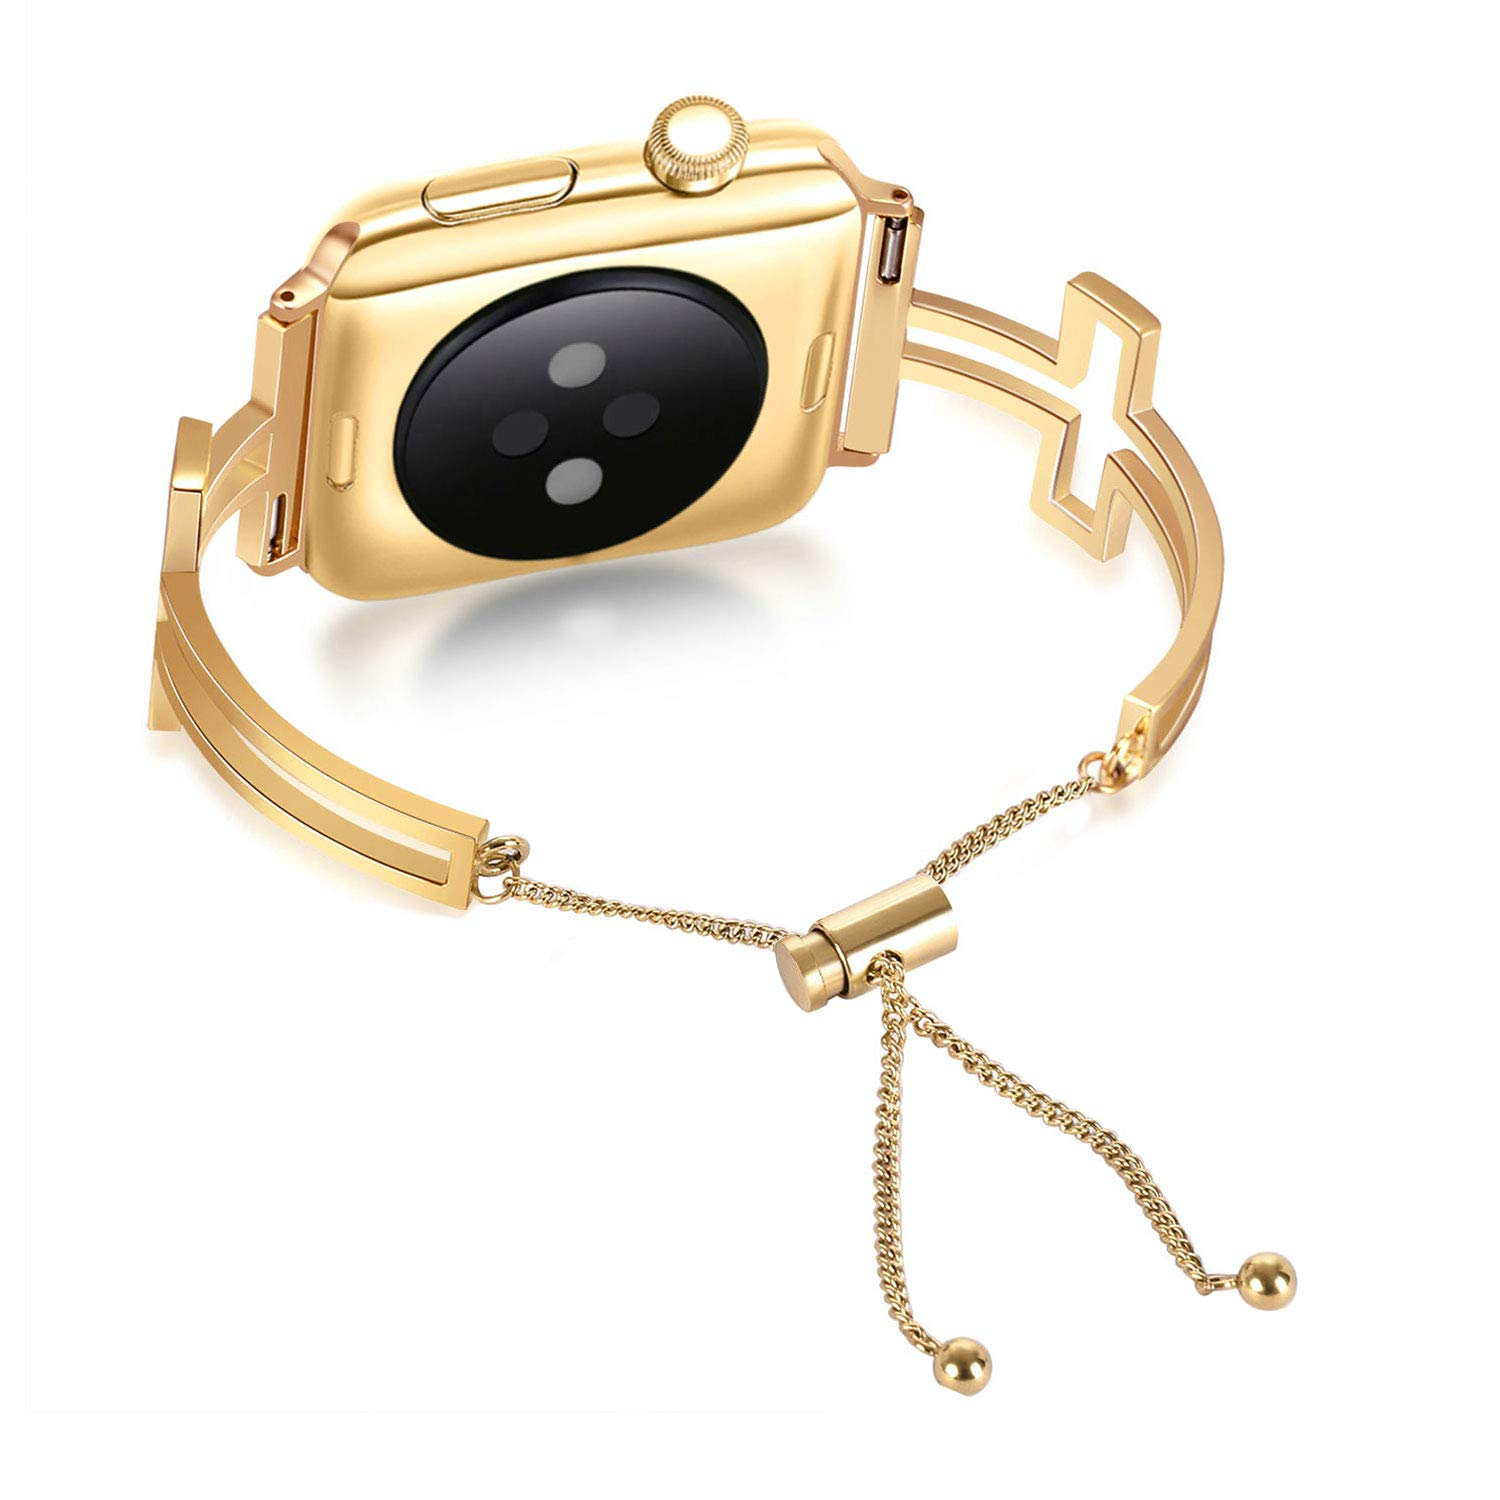 For Apple Watch Strap Bands 38mm 40mm Gold, Adjustable Replacement Smartwatch Accessory Sport Wristband, Jewelry Classic Pendant Tassel Stainless ...